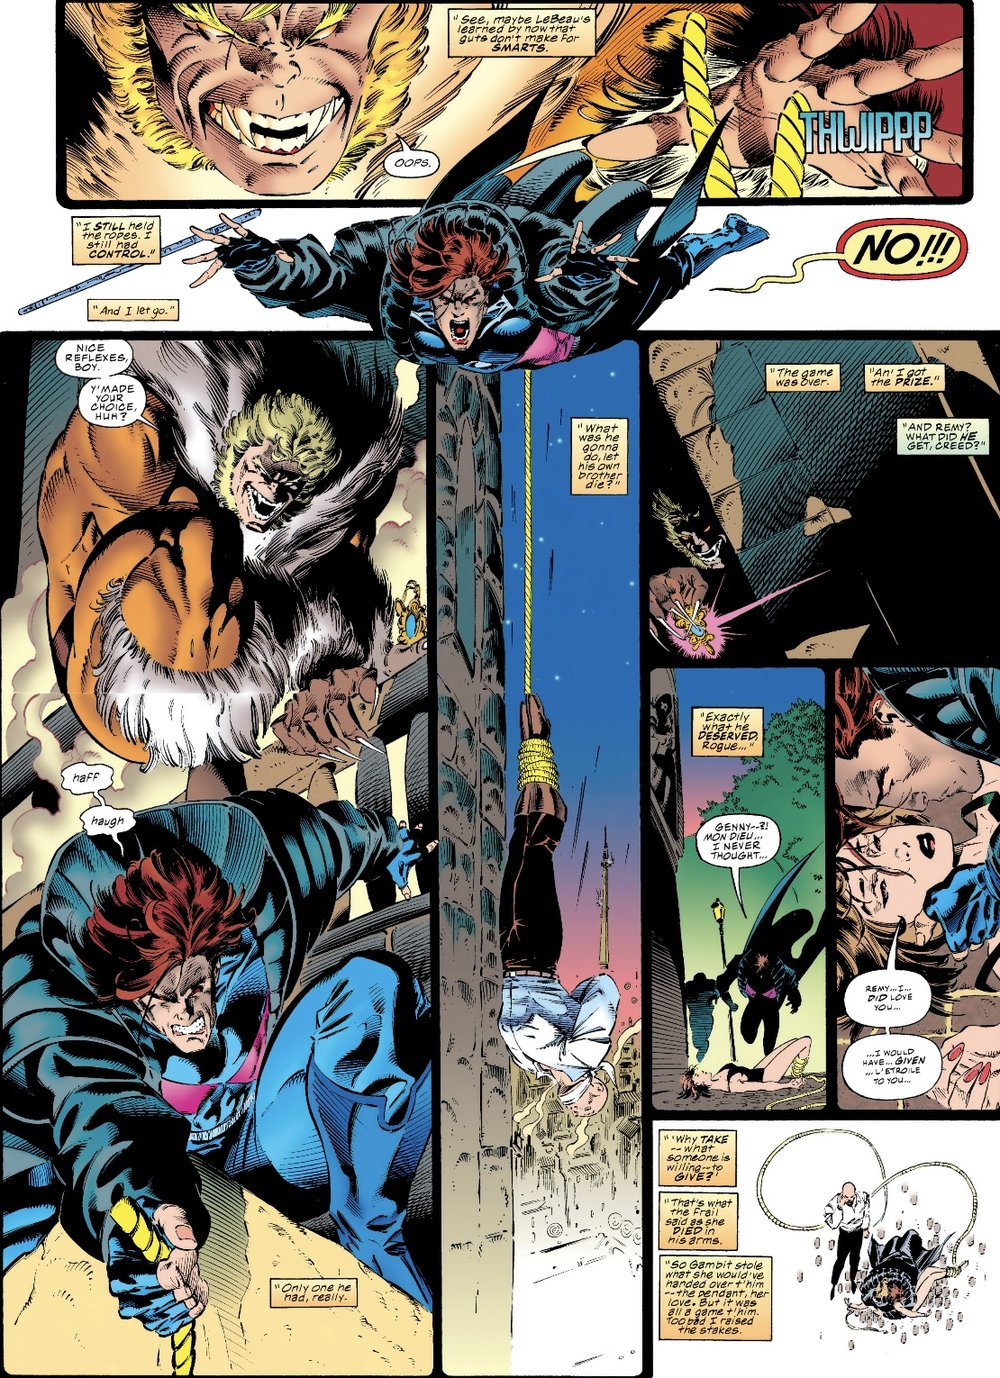 Gambit and Sabertooth's first encounter in  Xmen #33